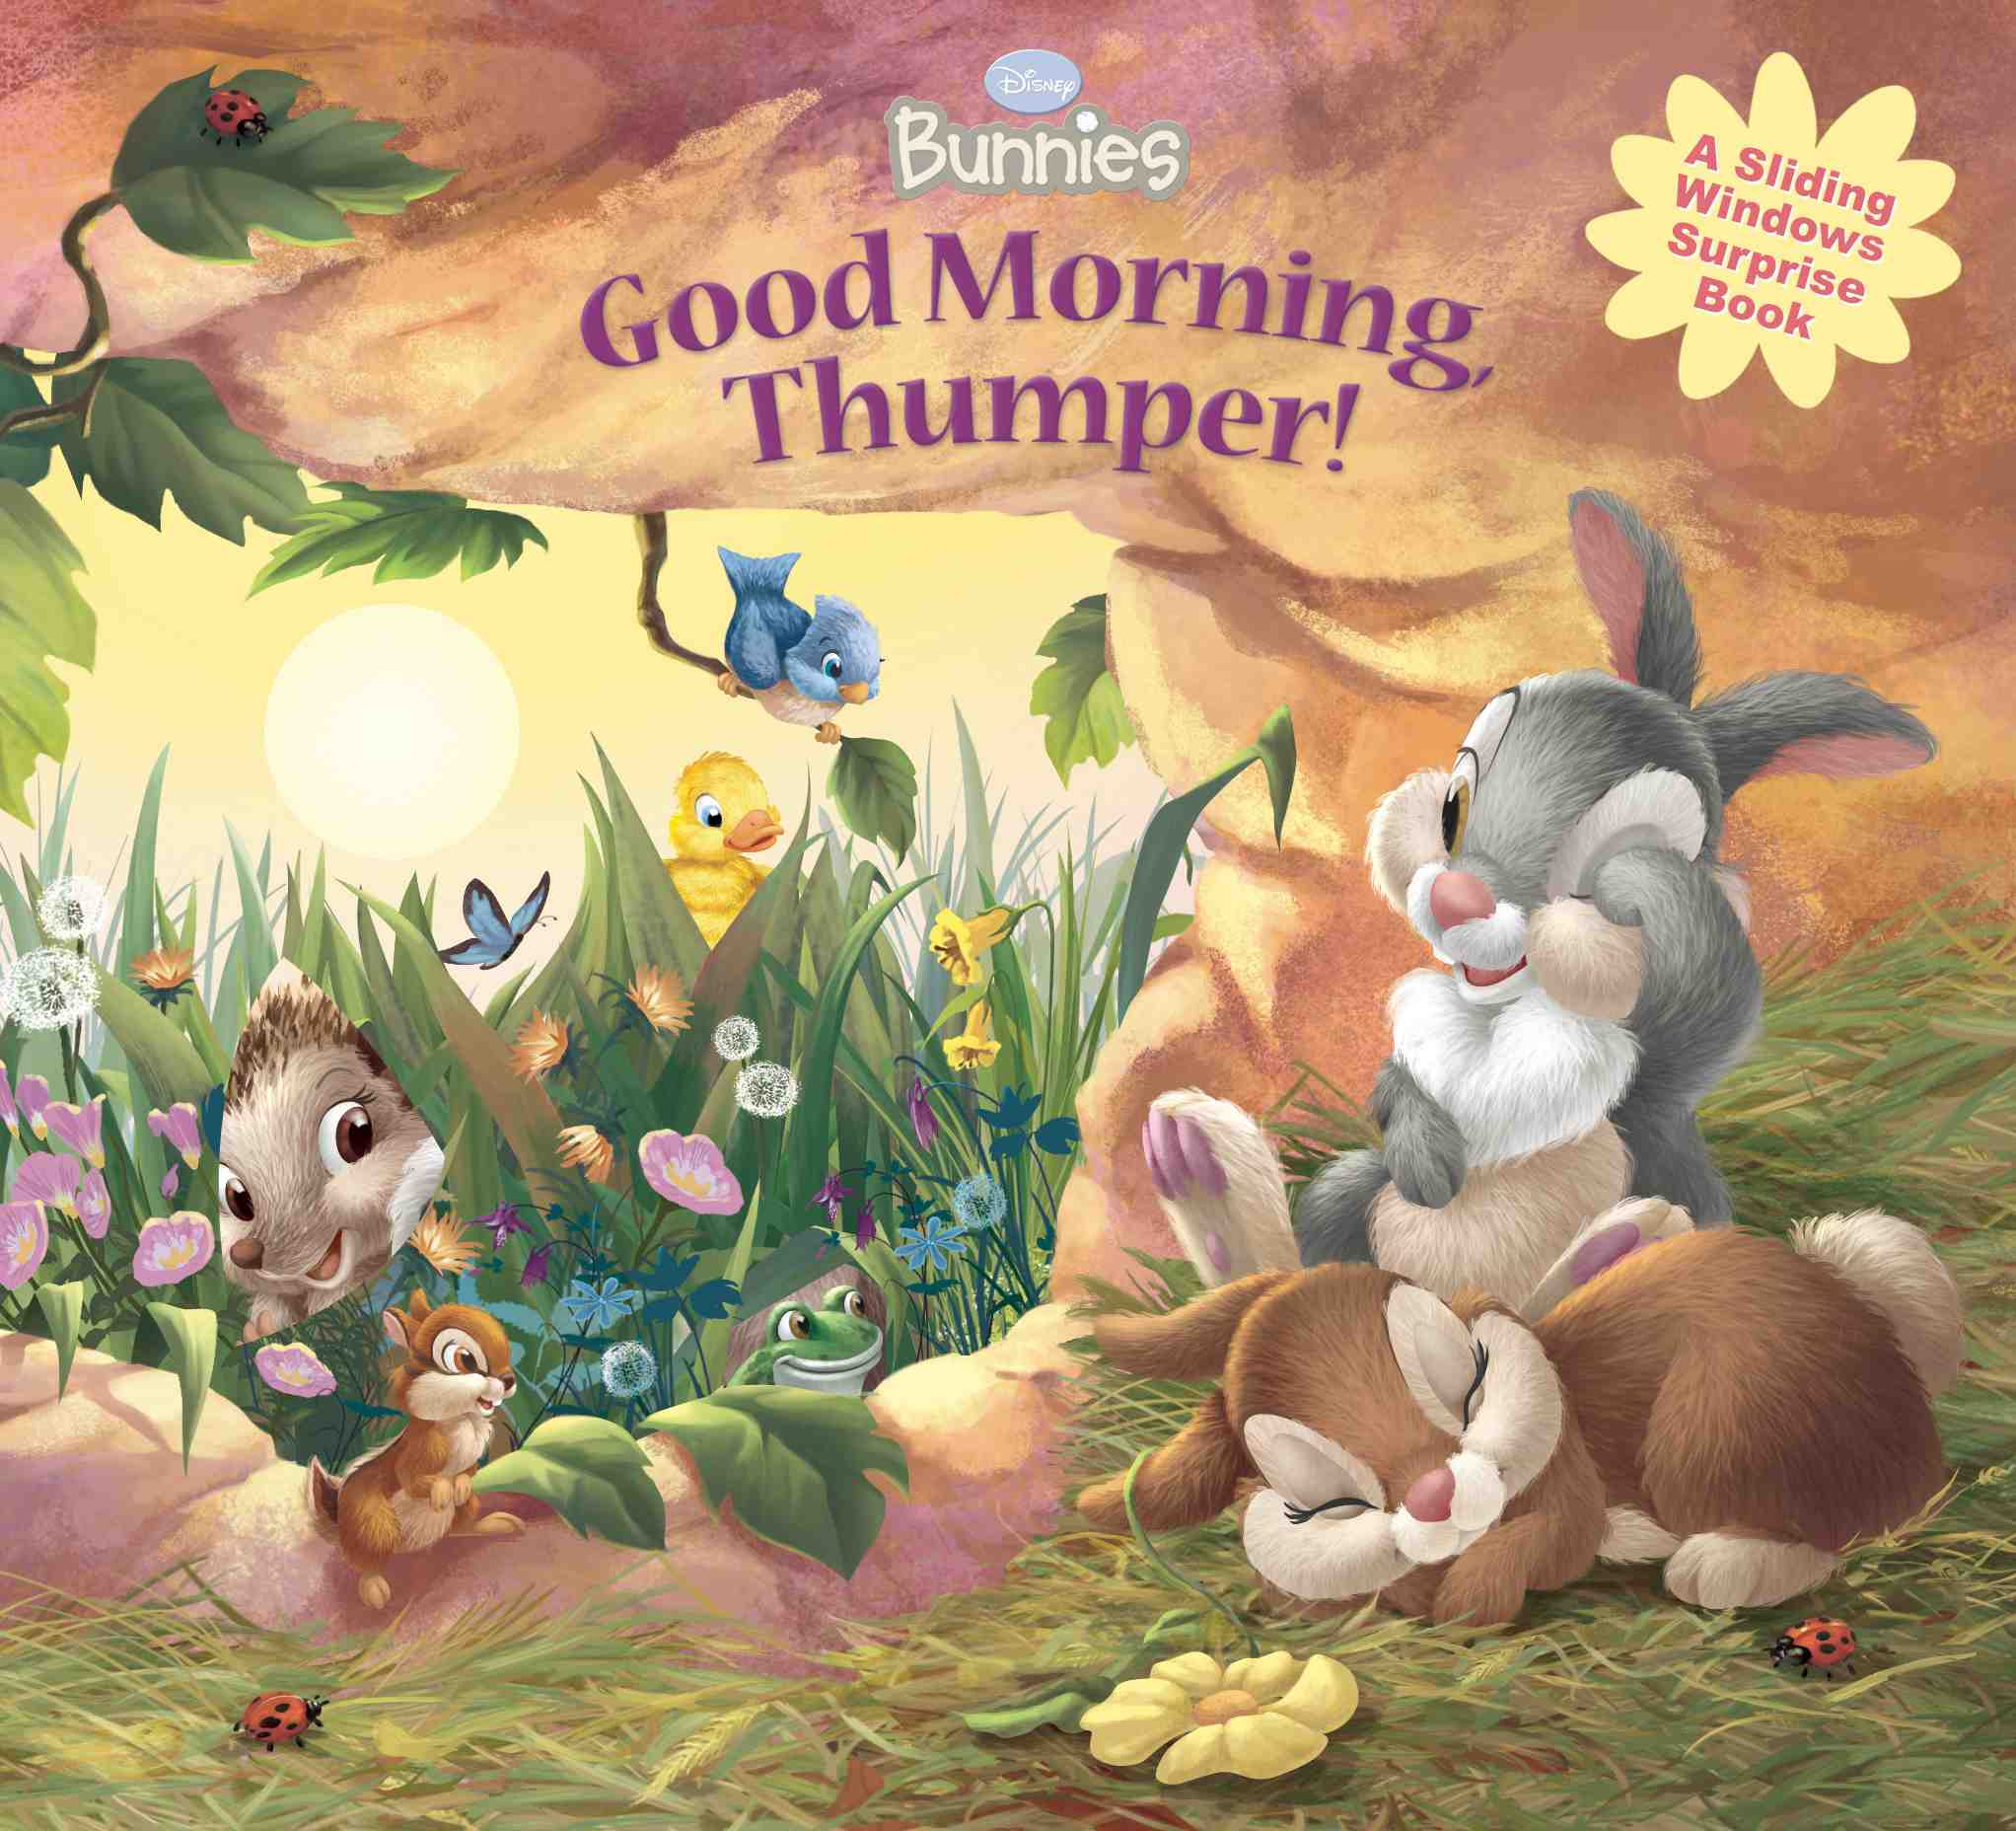 Good Morning, Thumper!